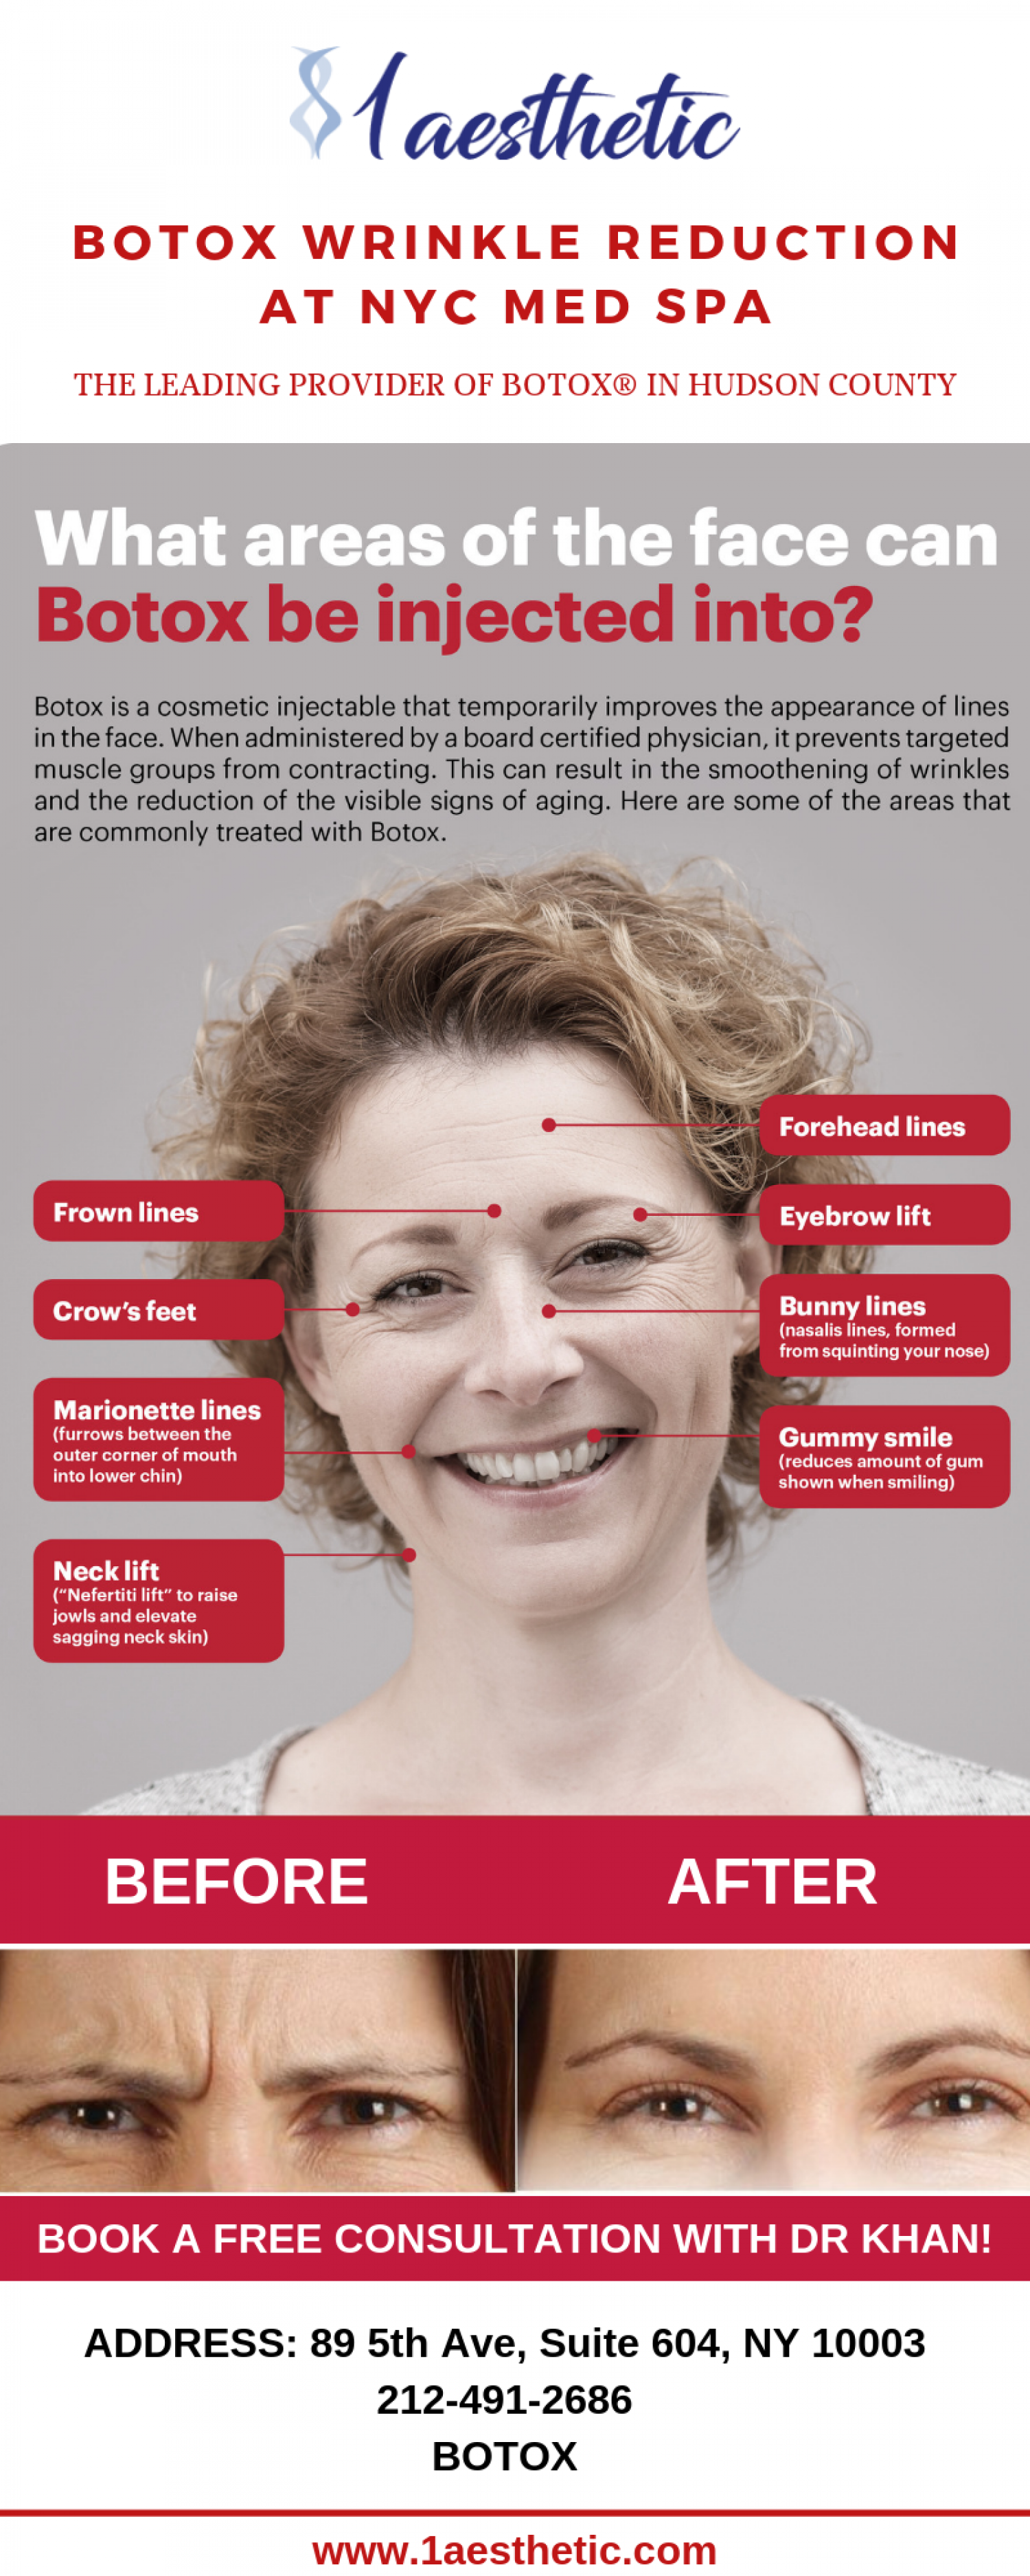 Botox Wrinkle Reduction At NYC MED SPA Infographic